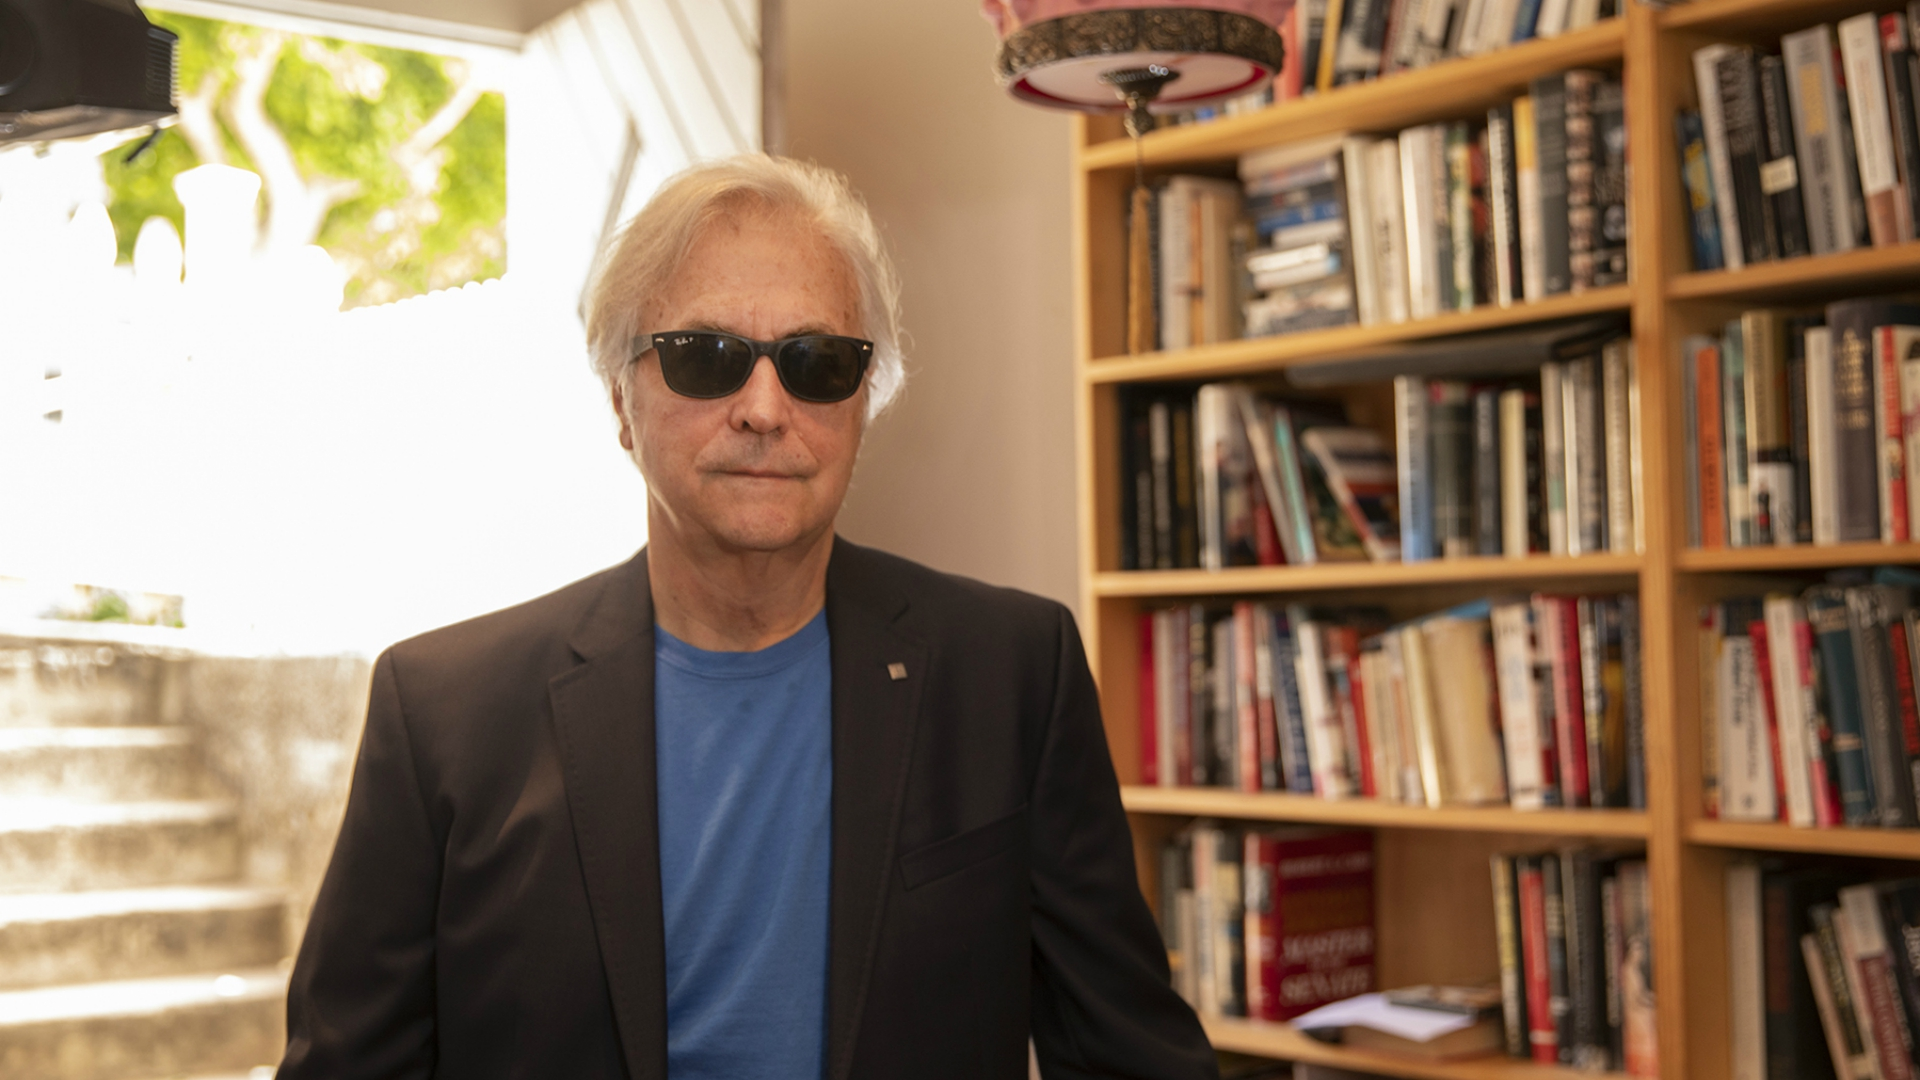 Journalist David Talbot on Life After a Stroke and What Really Matters